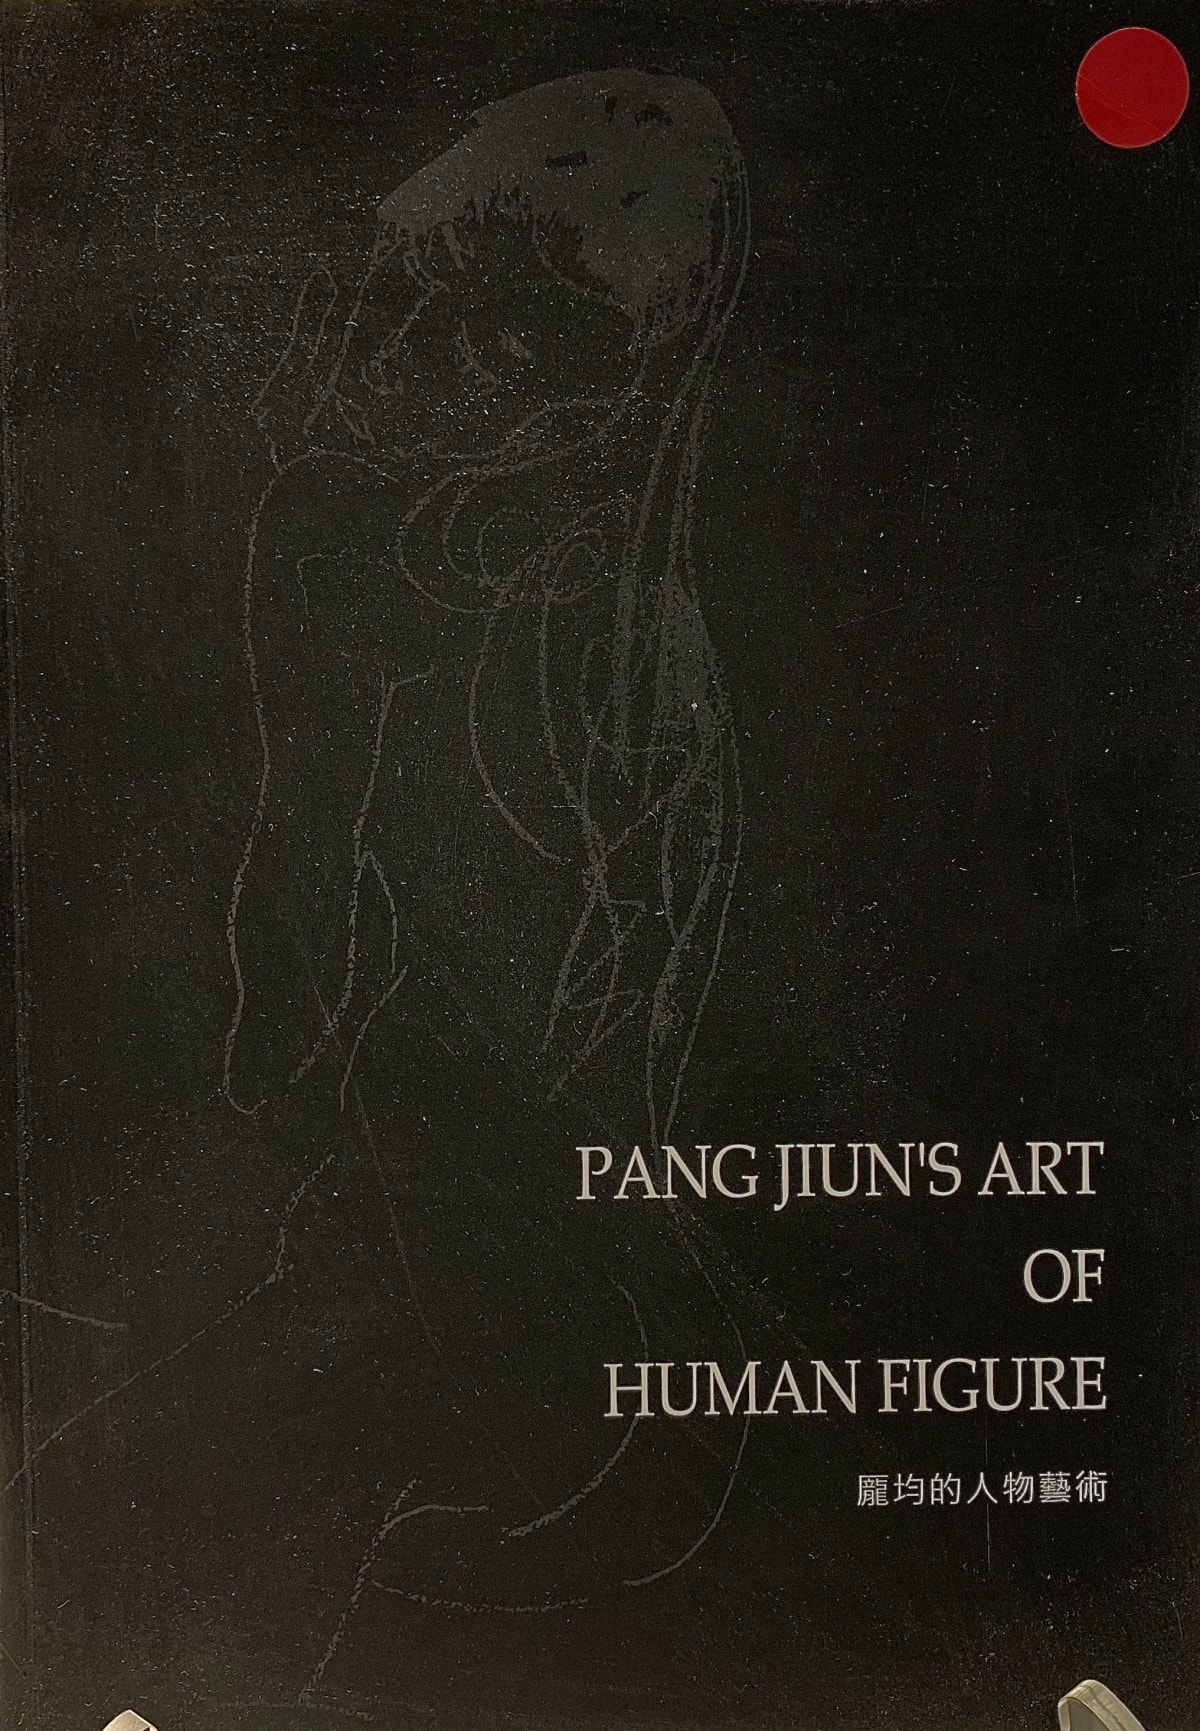 Pang Jiun's Art of Human Figure 龎均的人物藝術